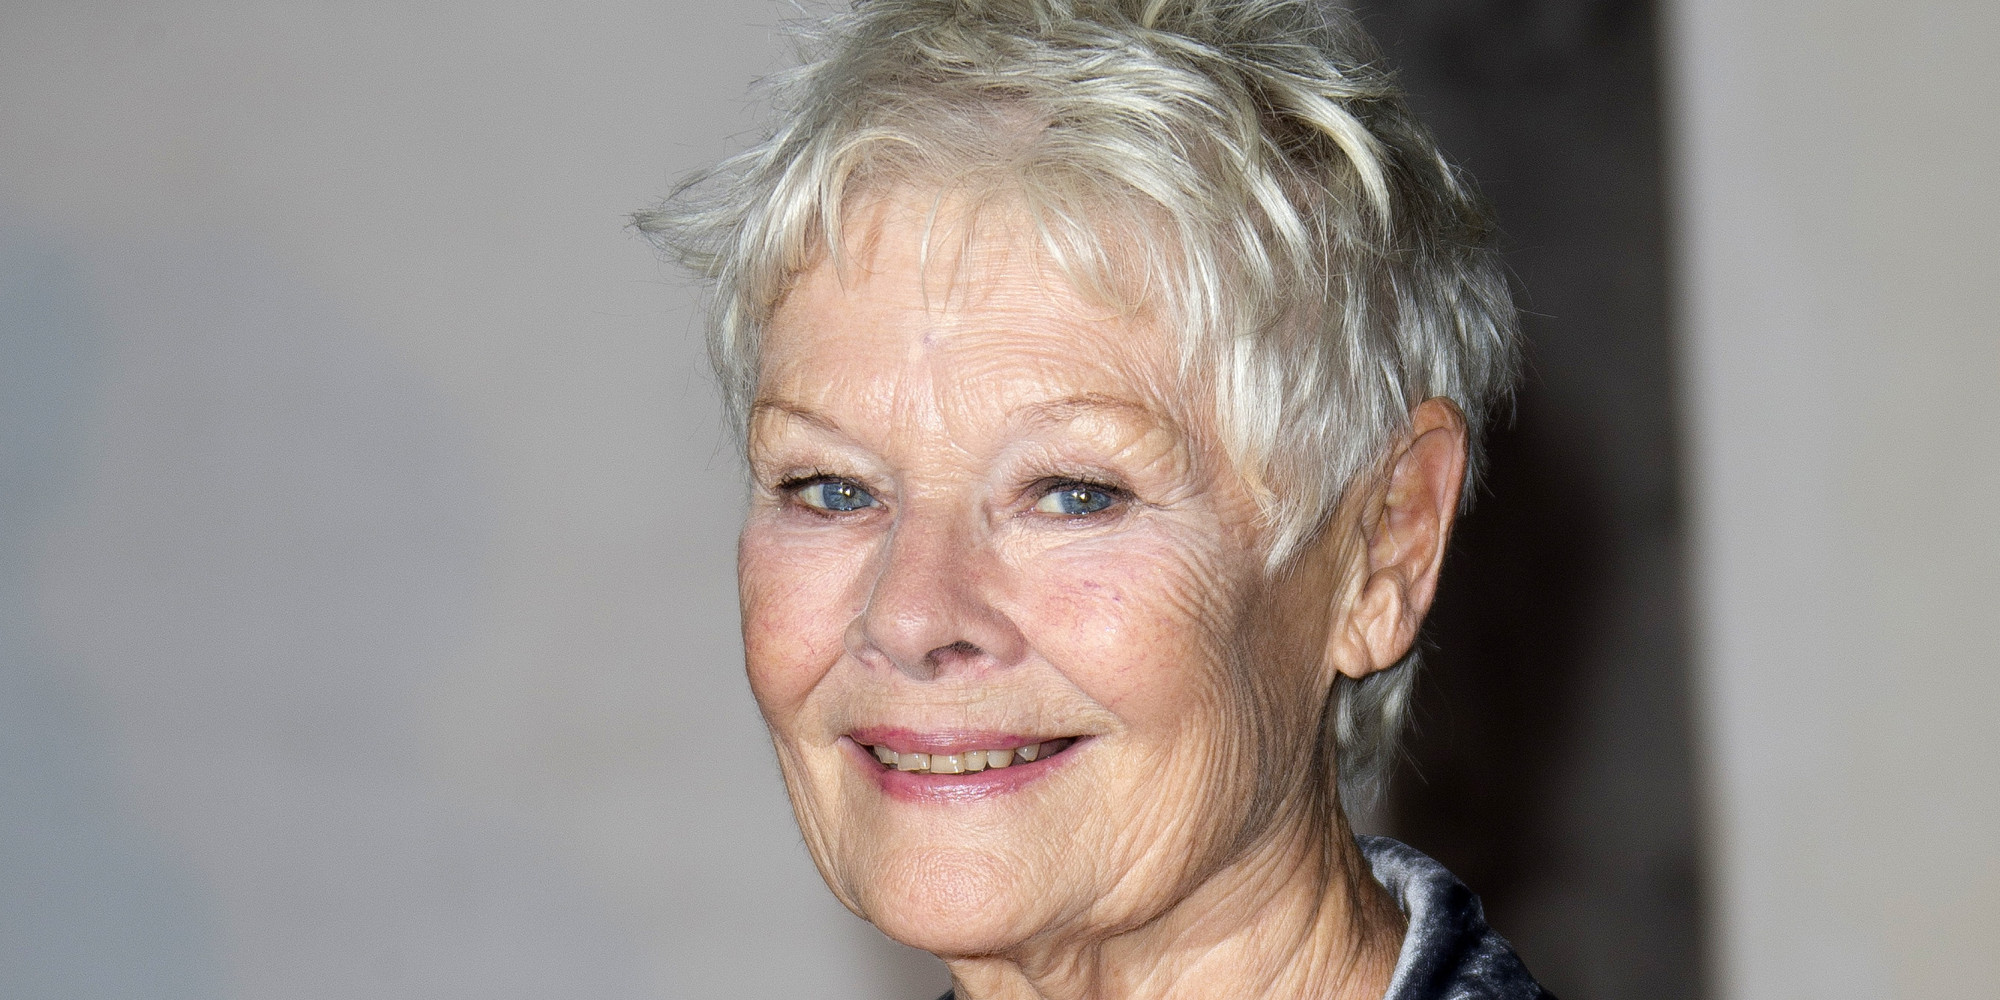 Things We Love About Judi Dench On Her 80th Birthday | The ...